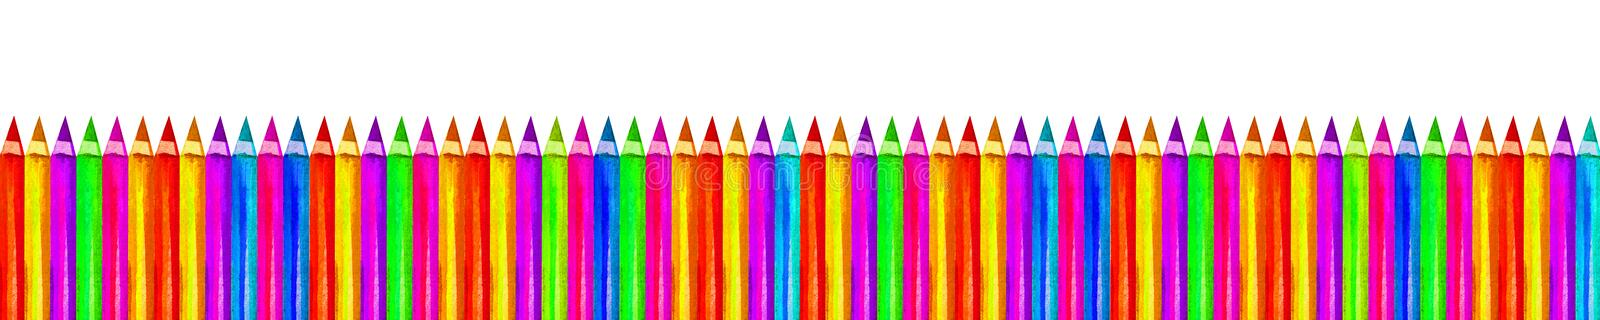 Back to school horizontal banner of colored pencils isolated on white background. Copy space for text. Hand drawing watercolor. royalty free stock photo